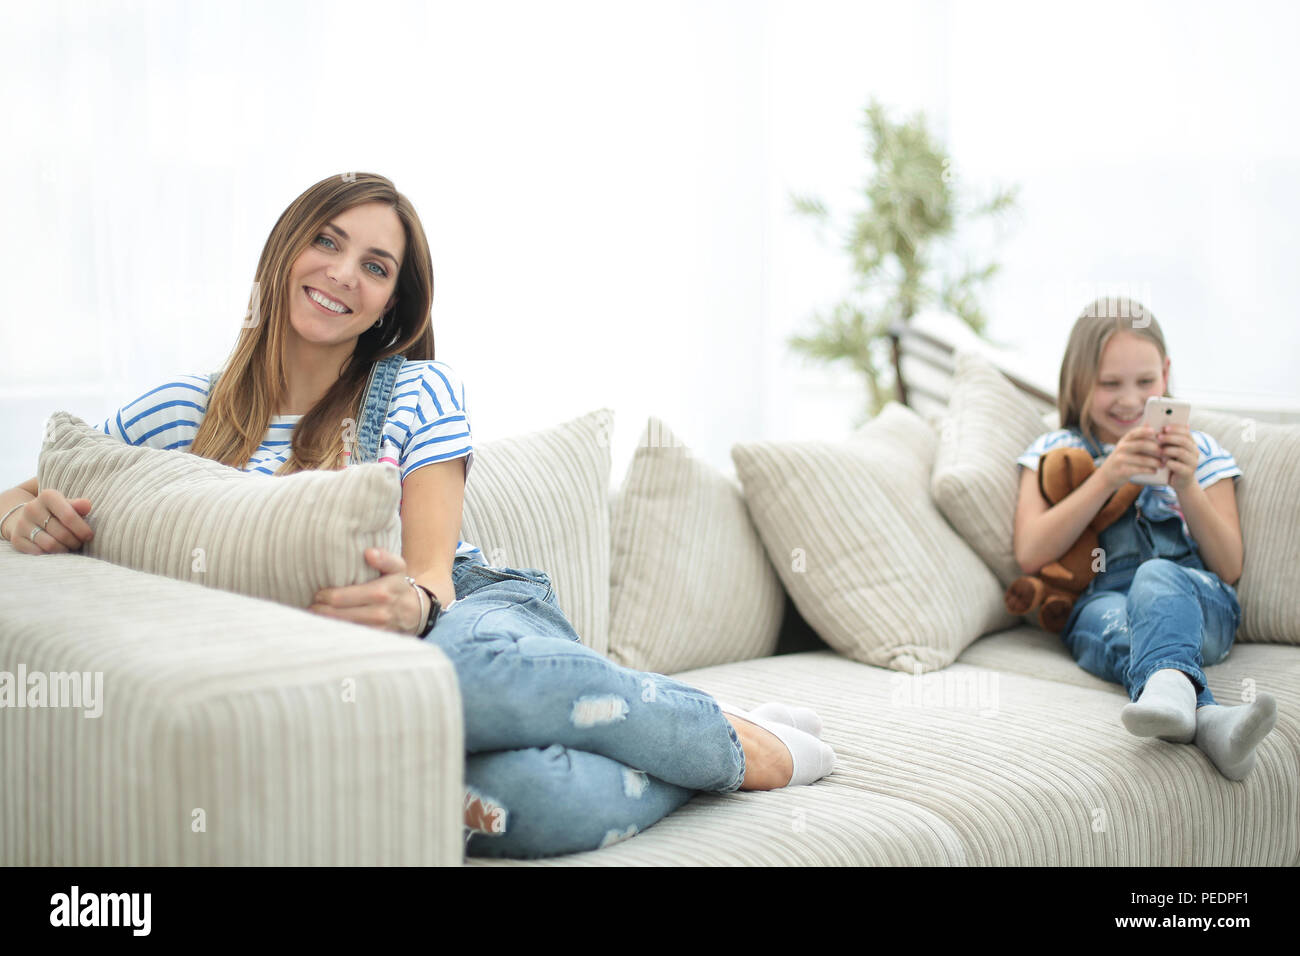 young housewife and her little daughter sitting on the couch - Stock Image